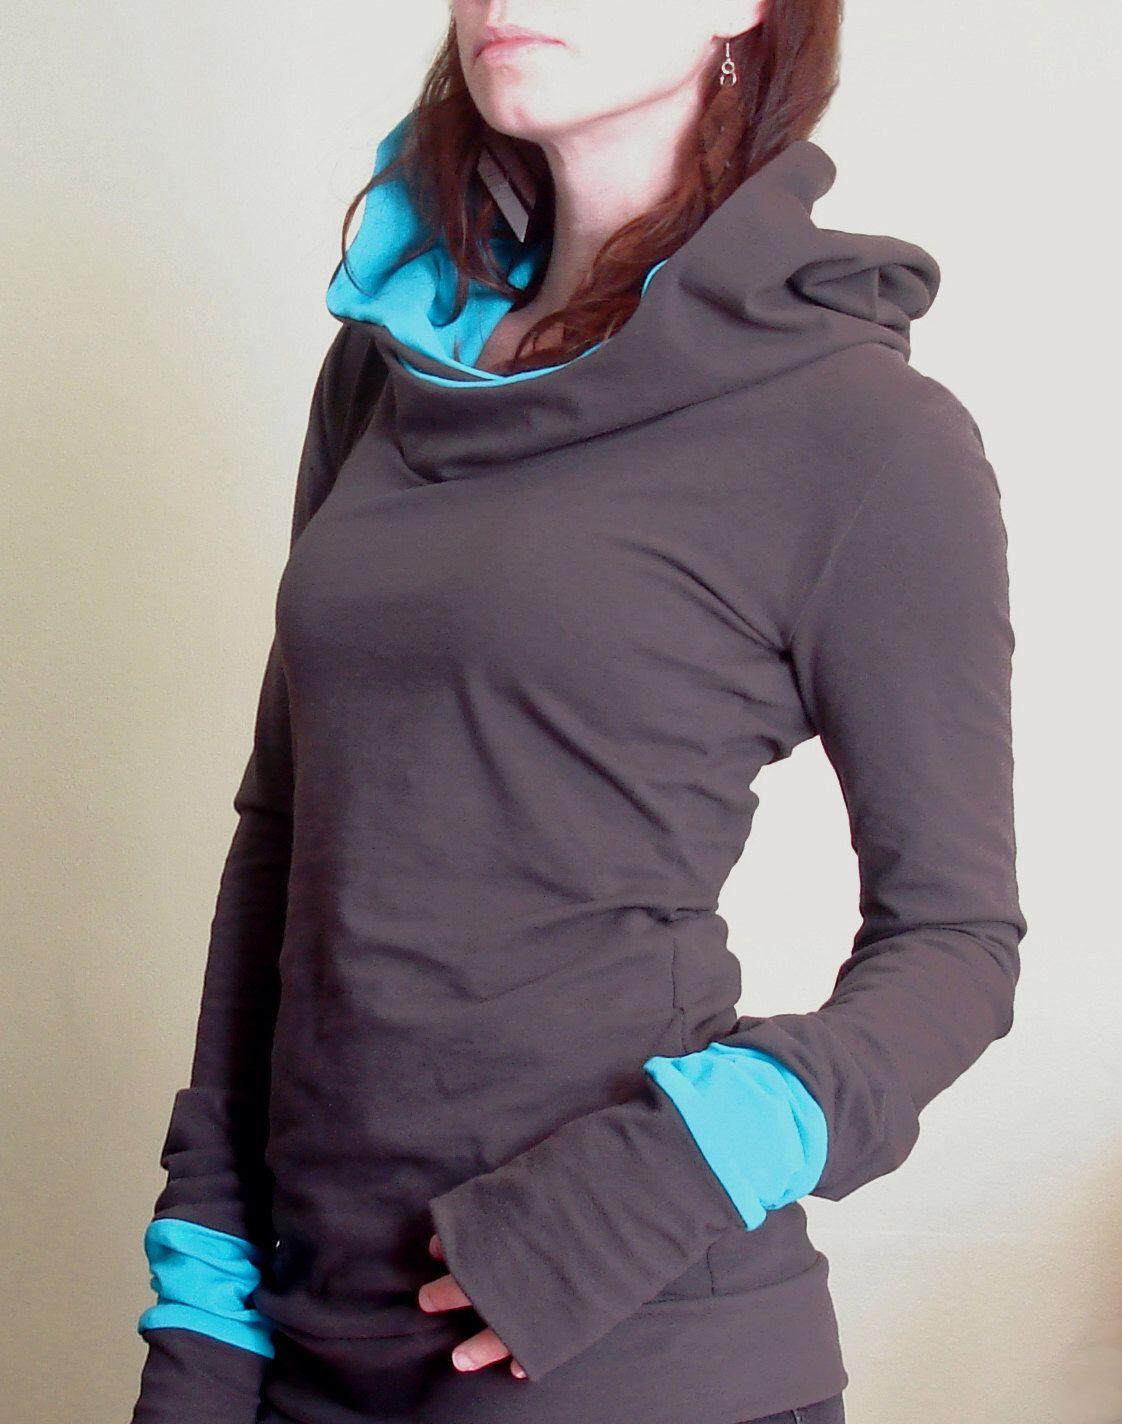 extra long sleeved hooded top Cement Grey with Light turquoise Blue by joclothing on Etsy https://www.etsy.com/listing/151113471/extra-long-sleeved-hooded-top-cement